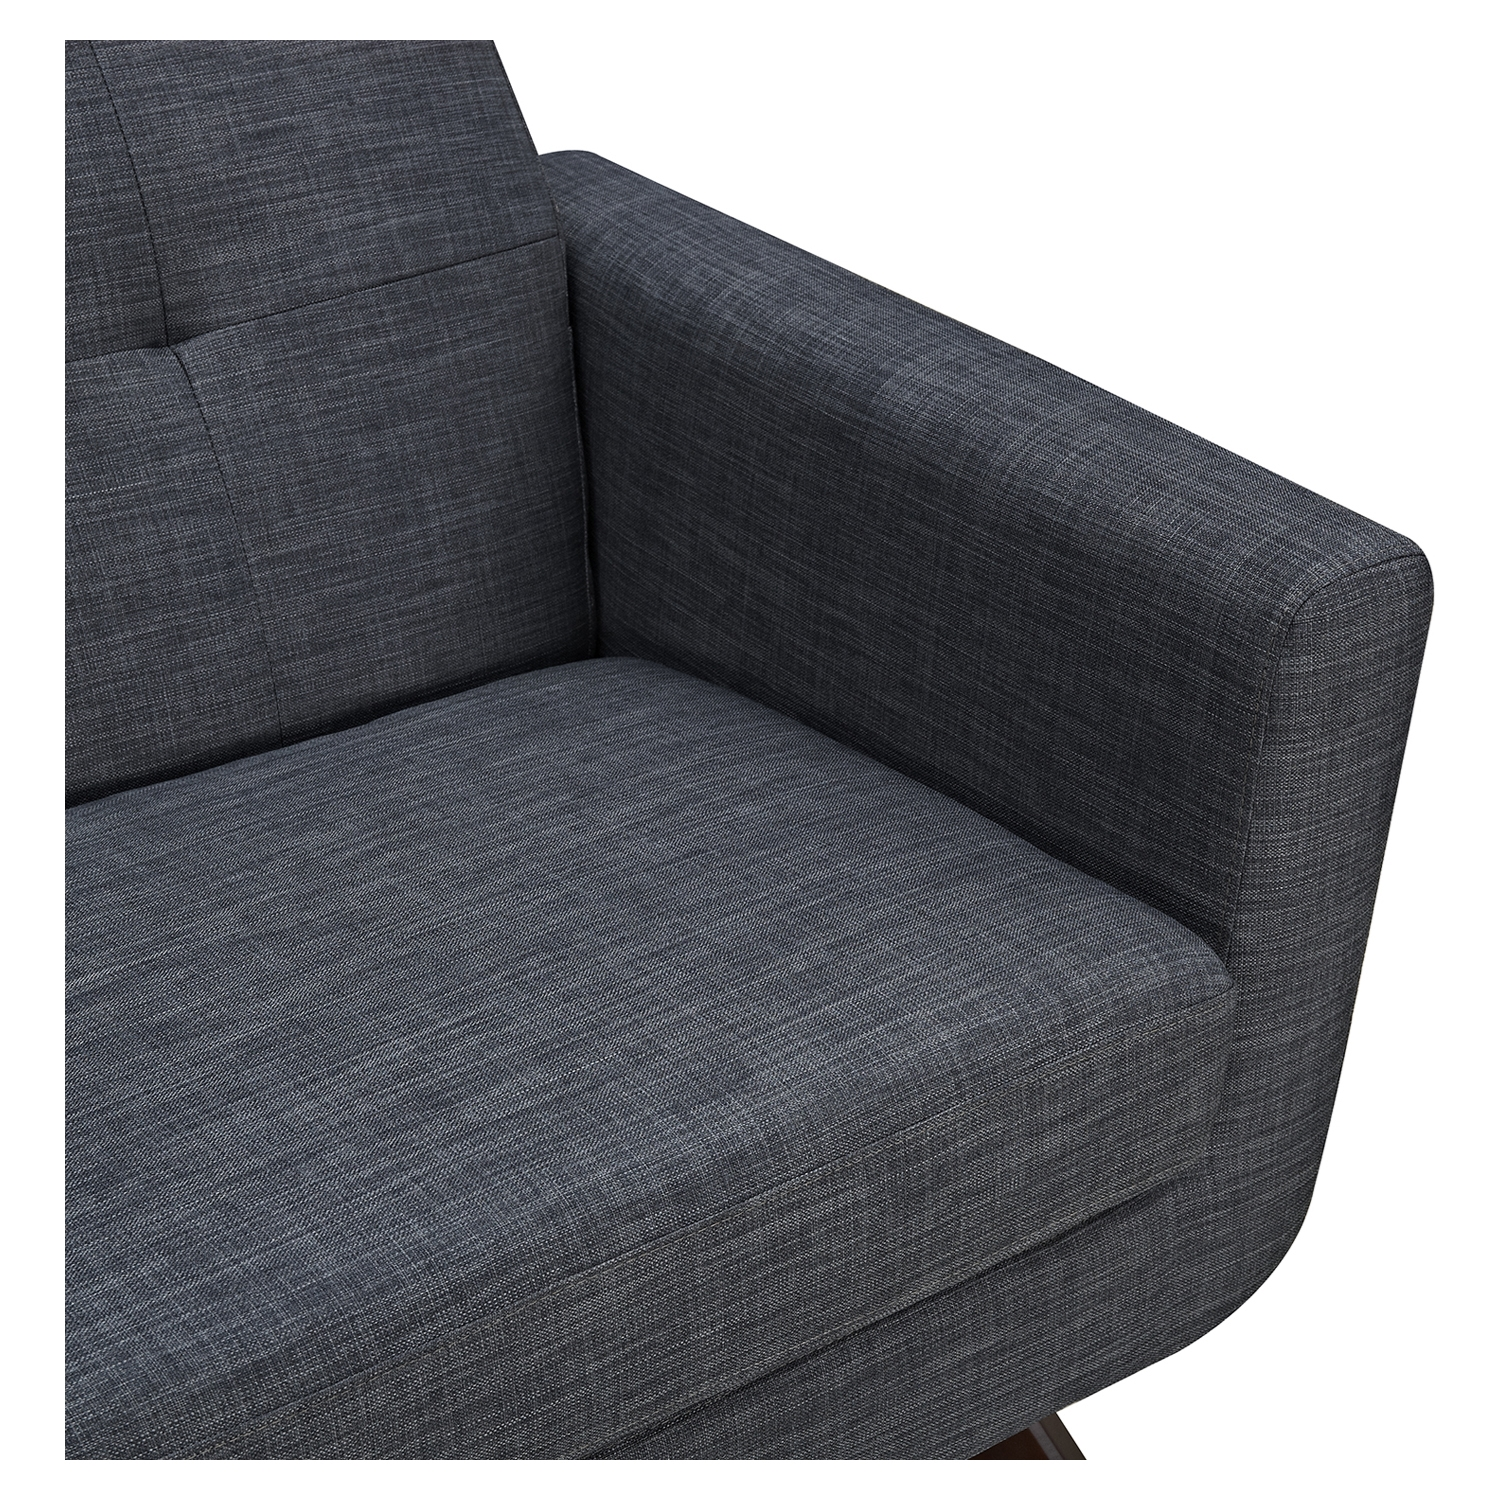 Dania Tufted Upholstery Armchair - Charcoal Gray - NYEK-224472